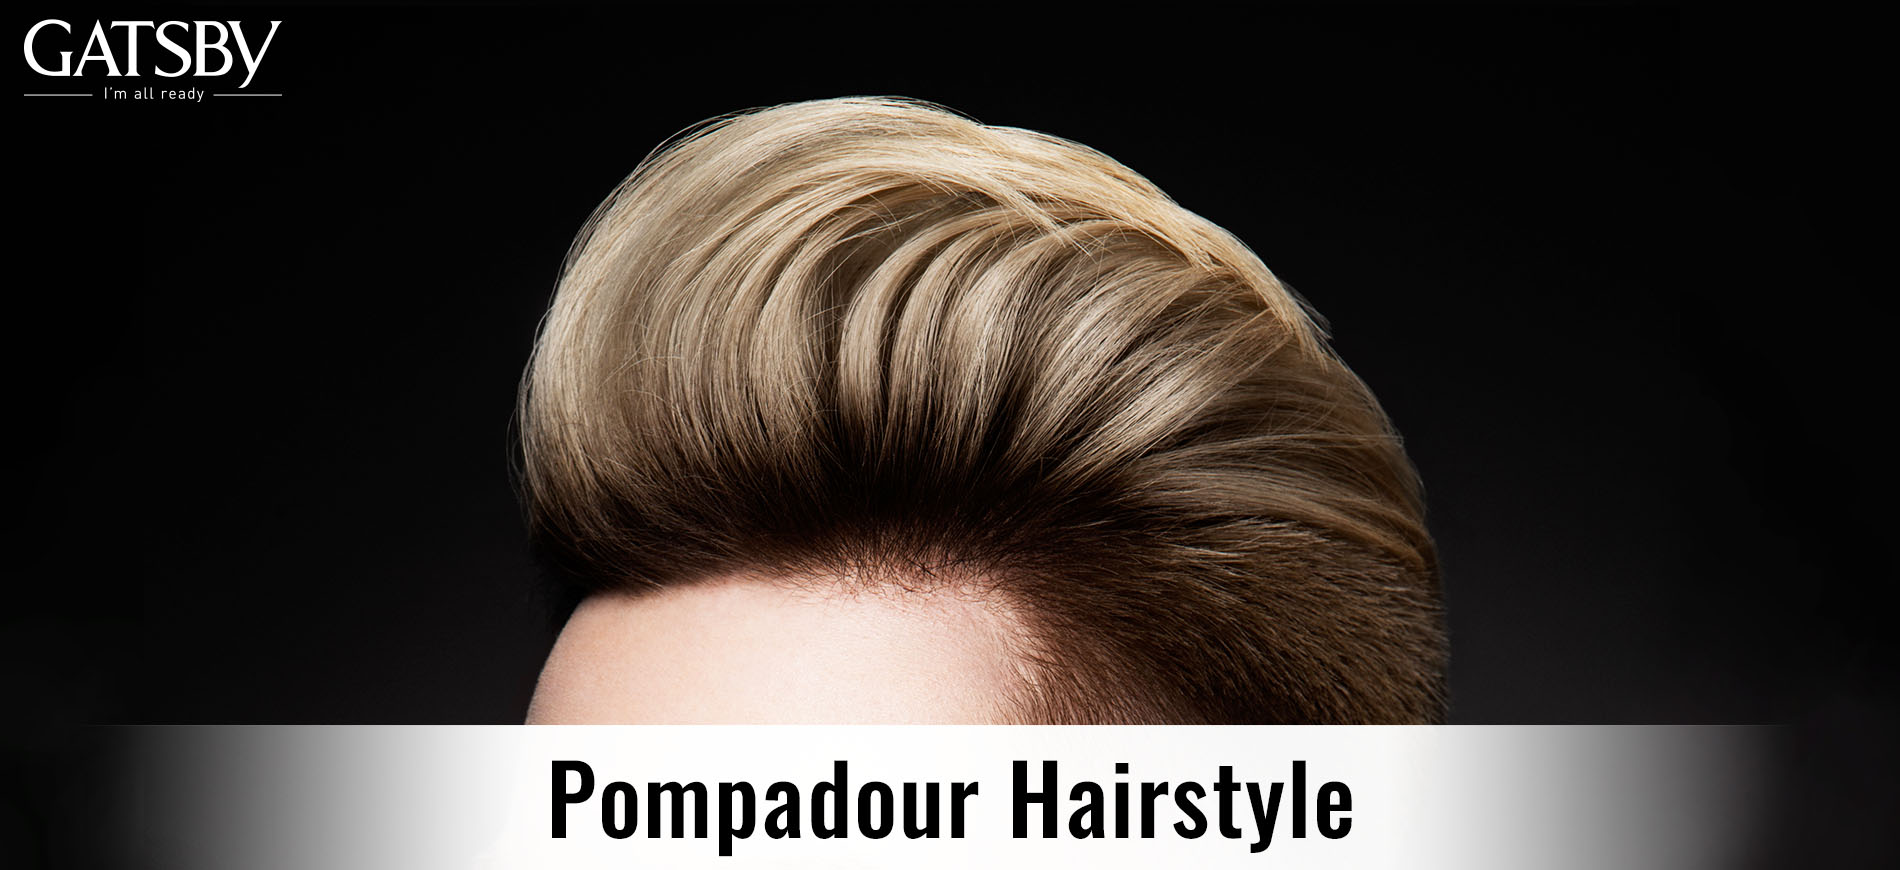 The Essential Guide To Pompadour Hairstyles For Men By Gatsby